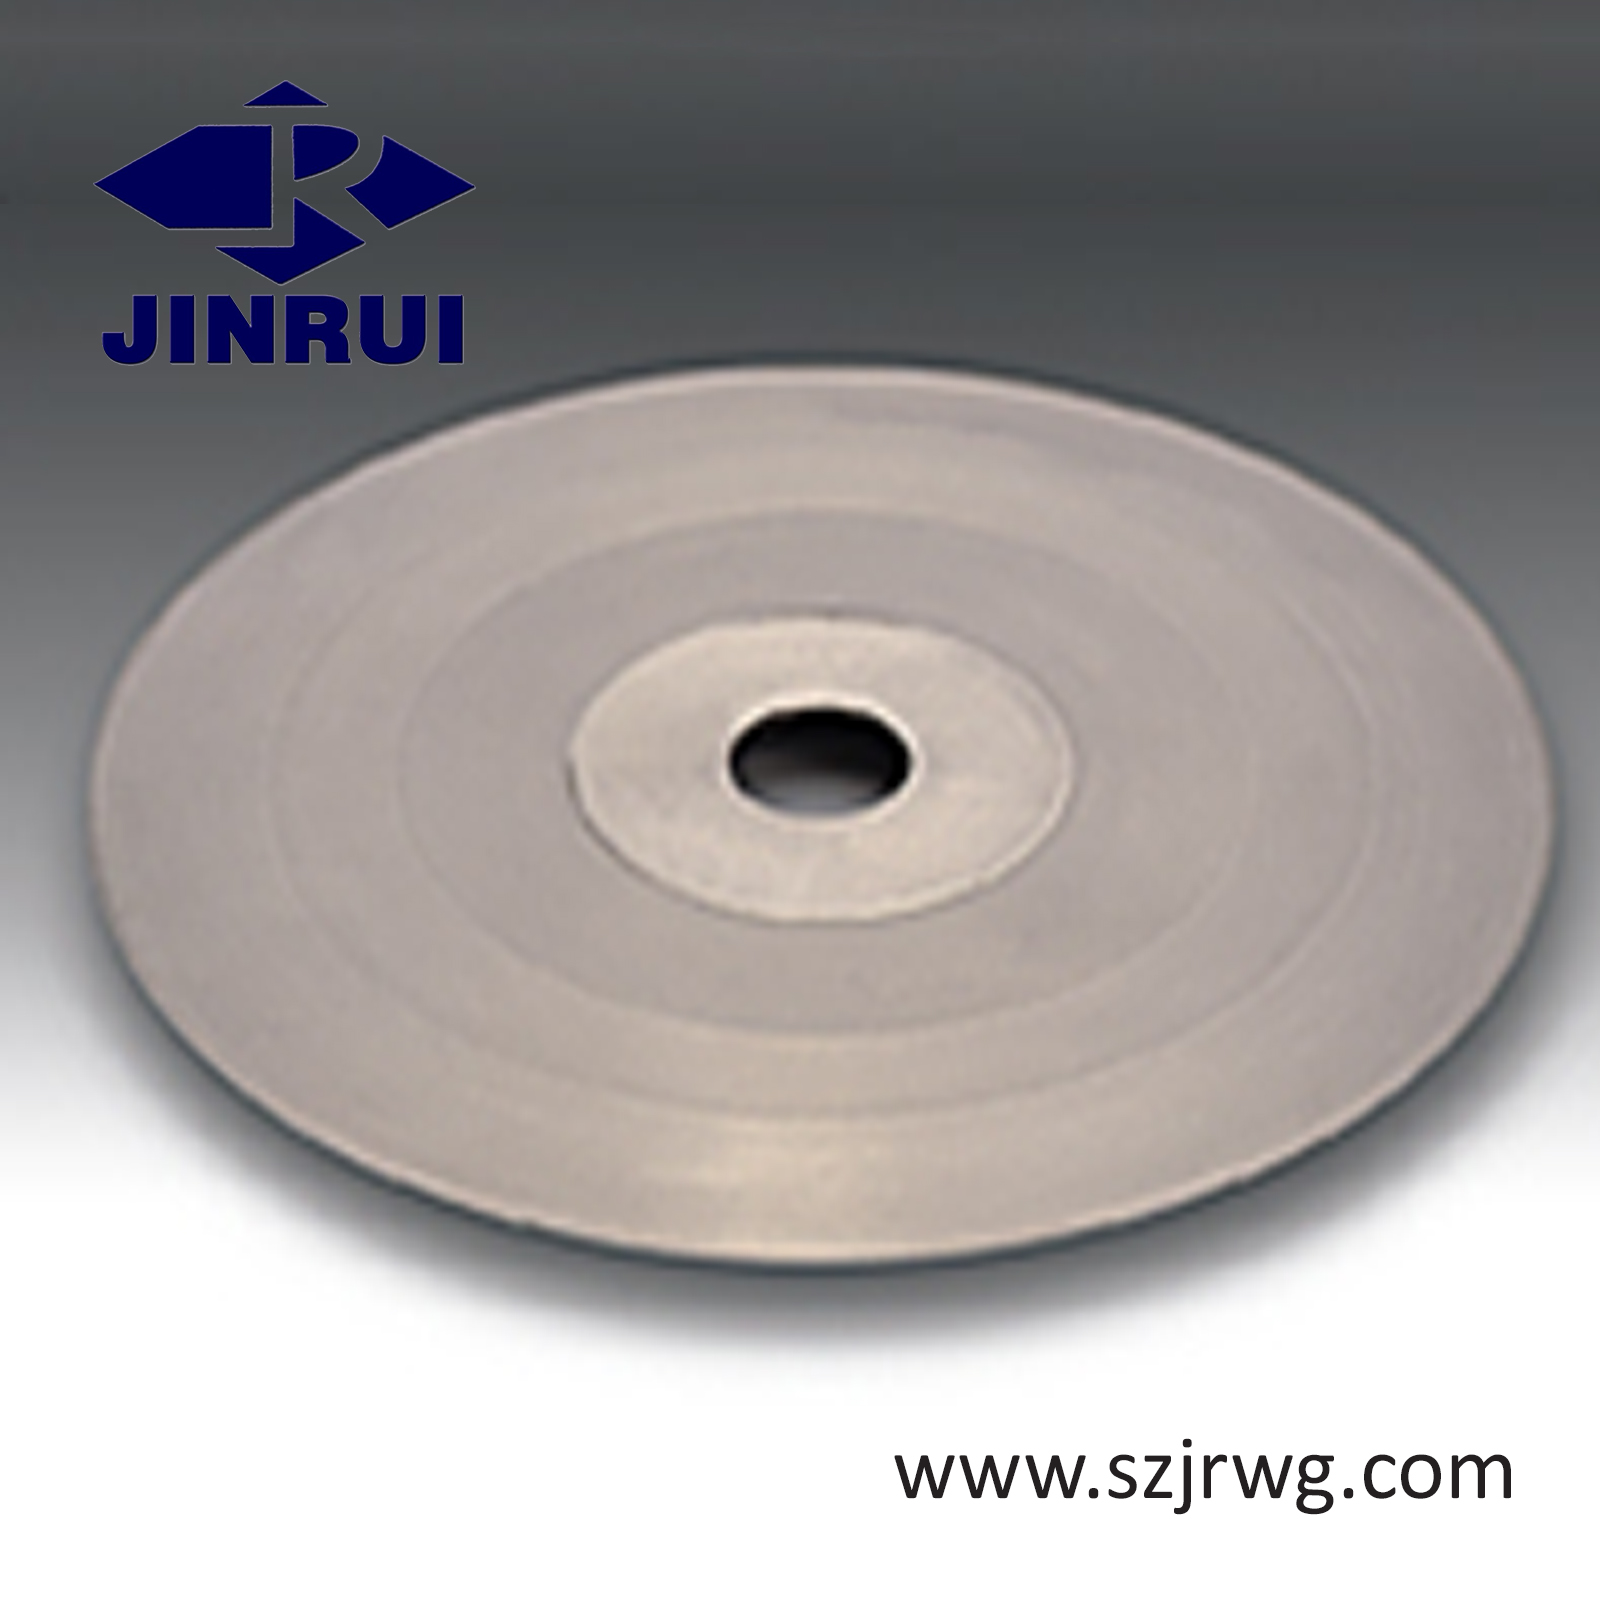 Solid Carbide Disc Cutter for Adhesive Tape/Long service life with particles of tungsten carbide